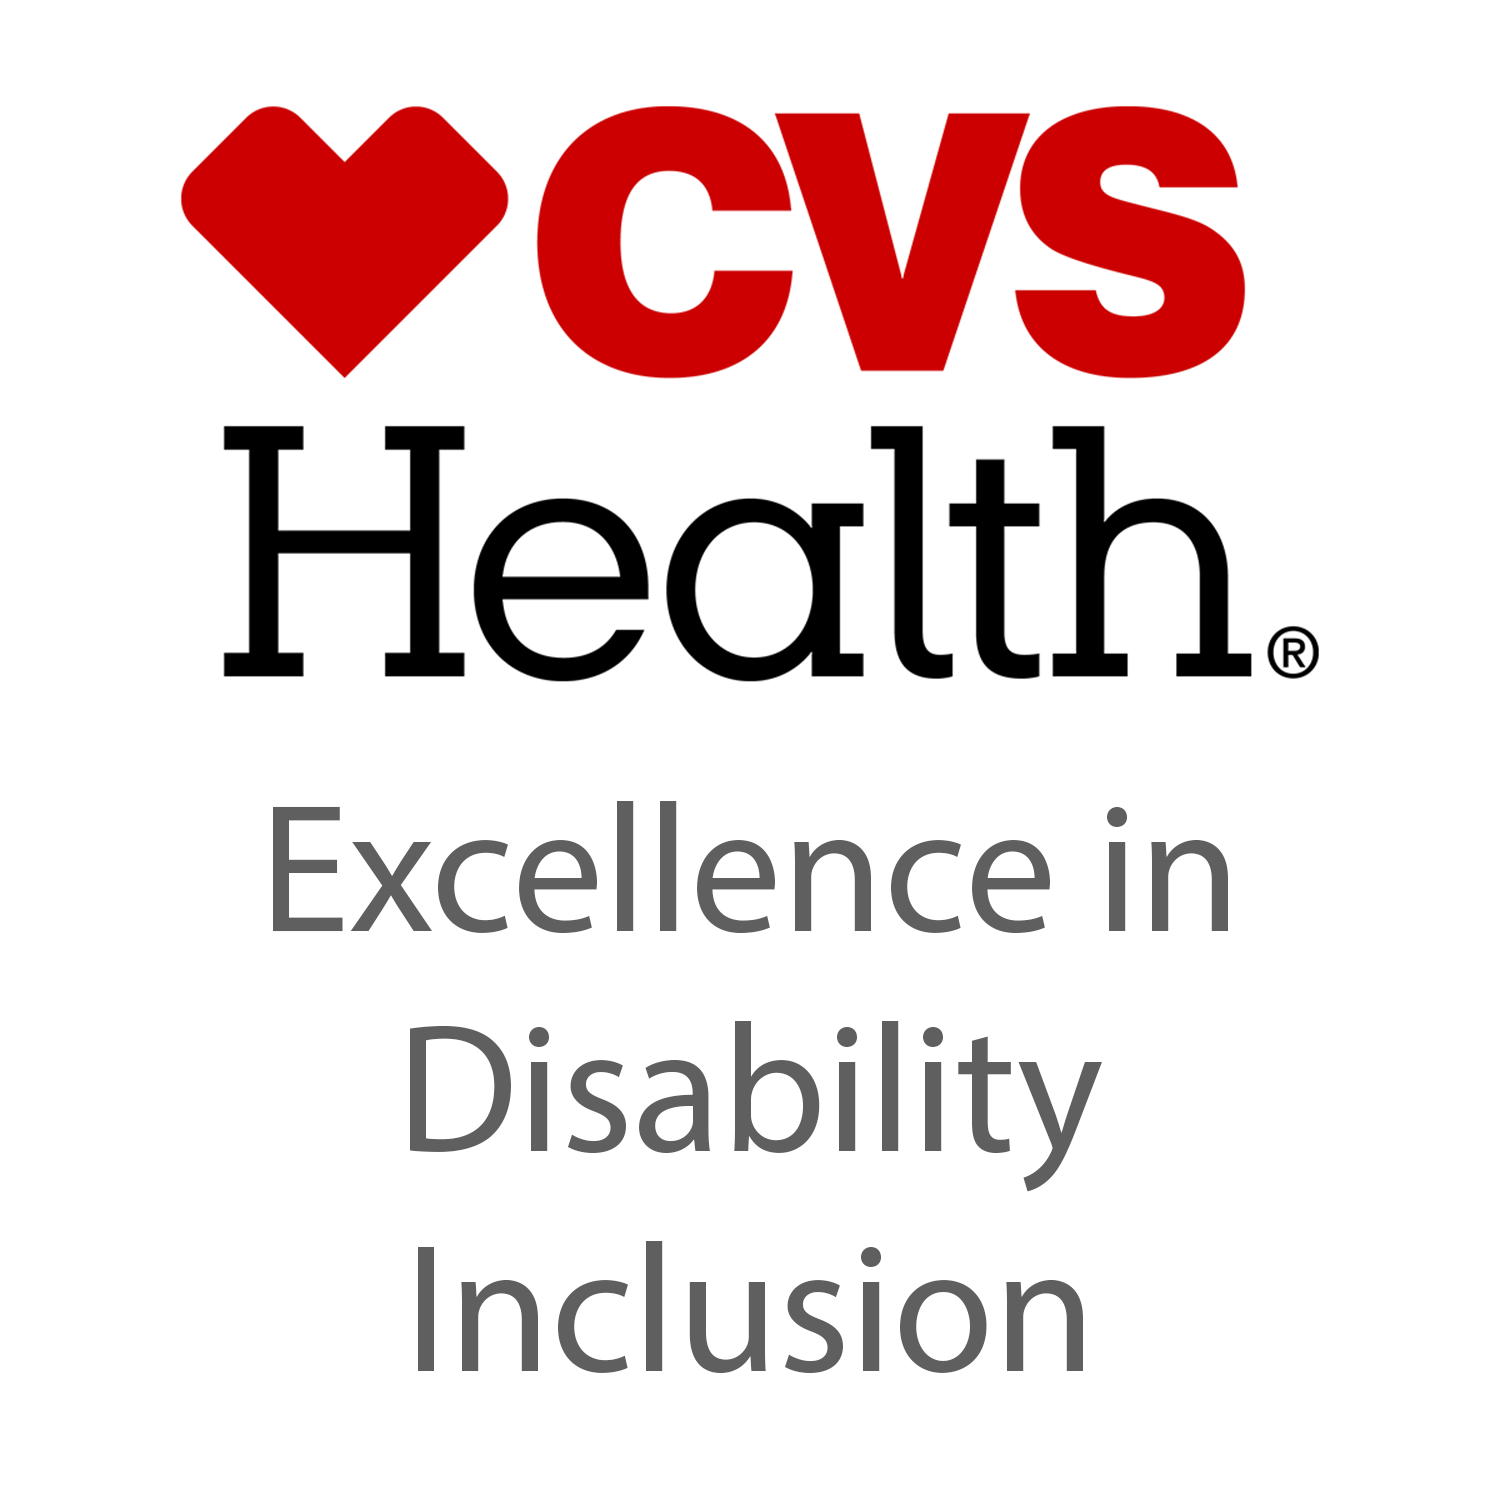 Image shows a banner that displays CVS Health Excellence in Disability Inclusion